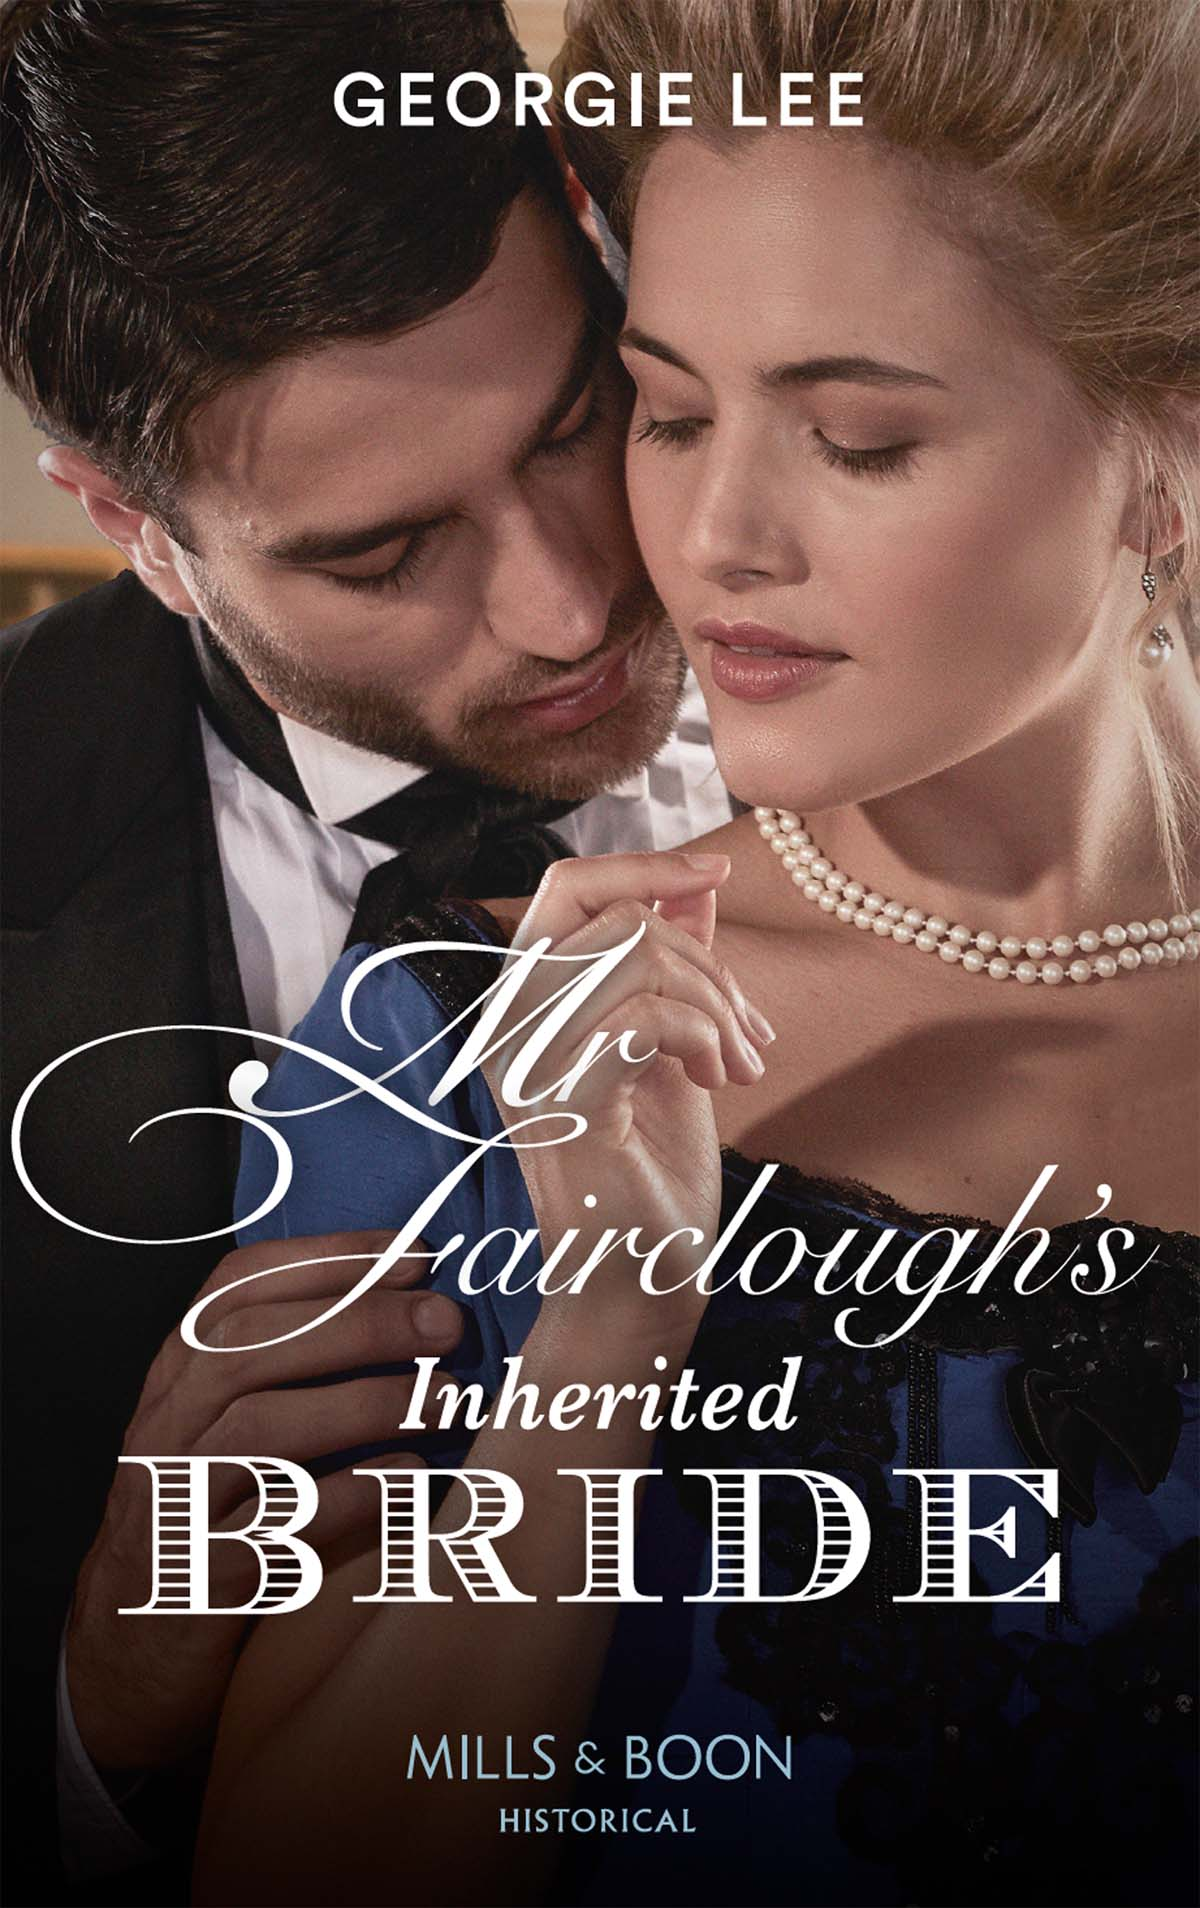 Georgie Lee Mr Fairclough's Inherited Bride to build in a new land